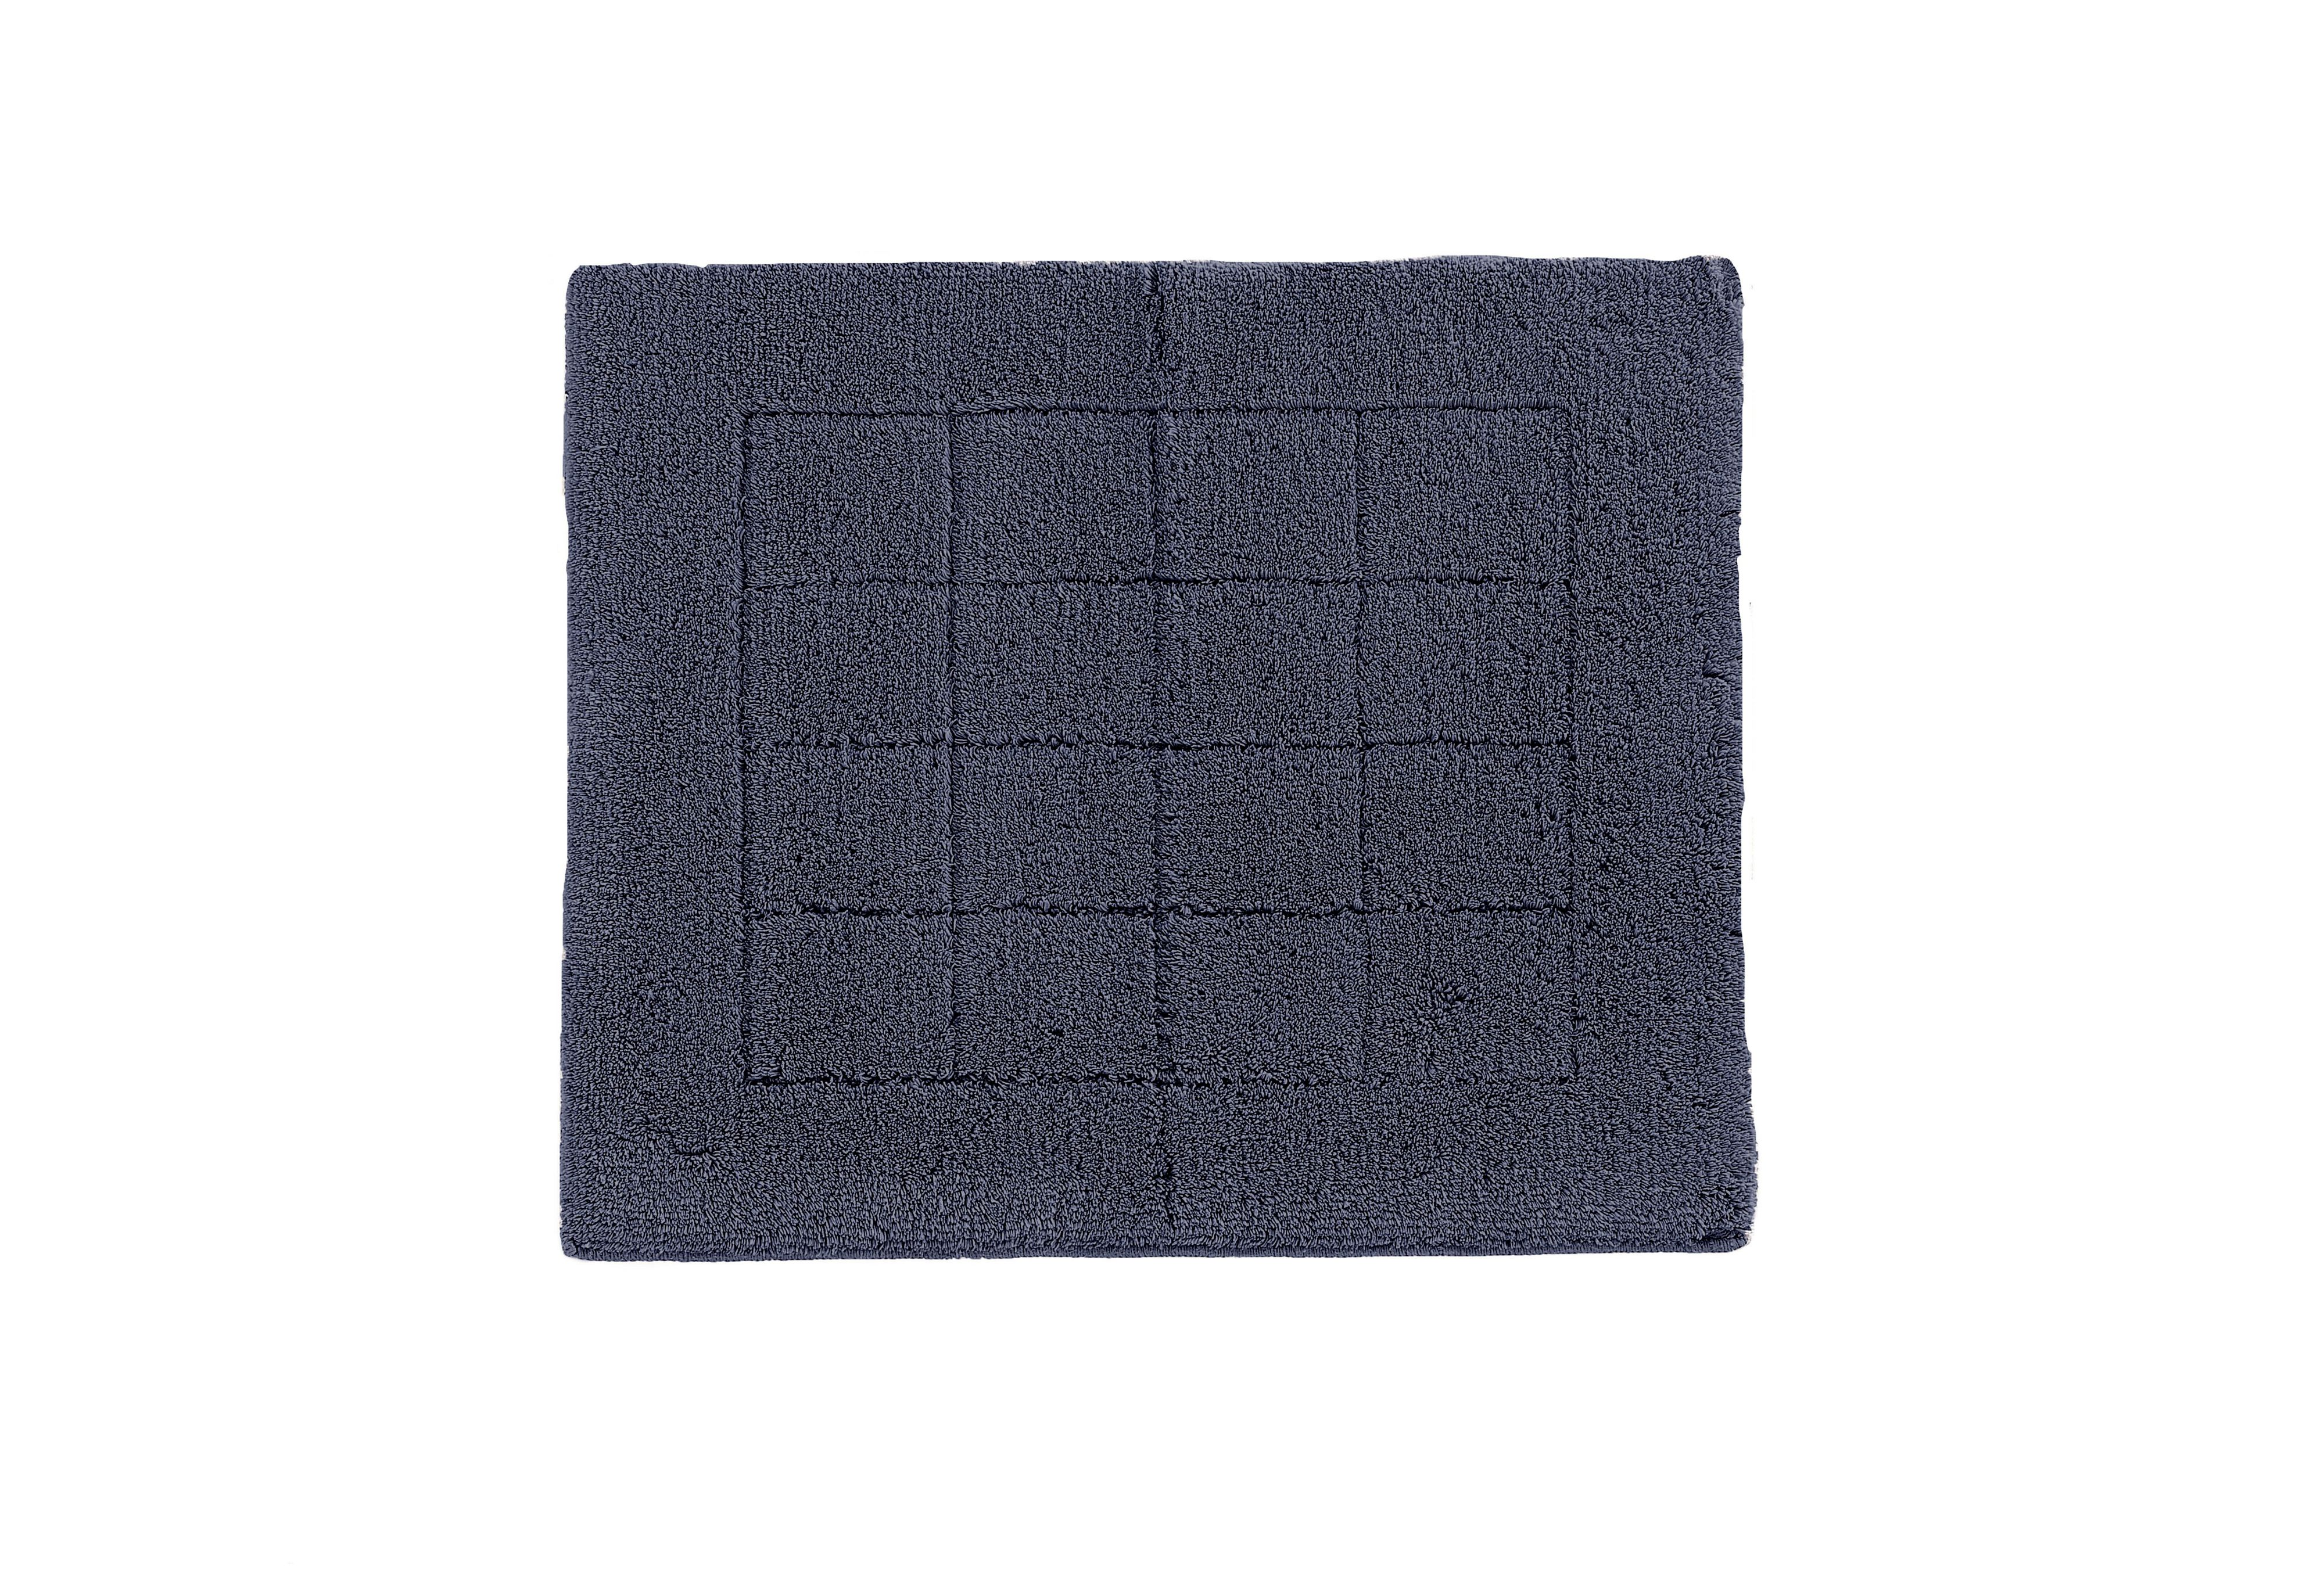 Exclusive bath mat range in charcoal